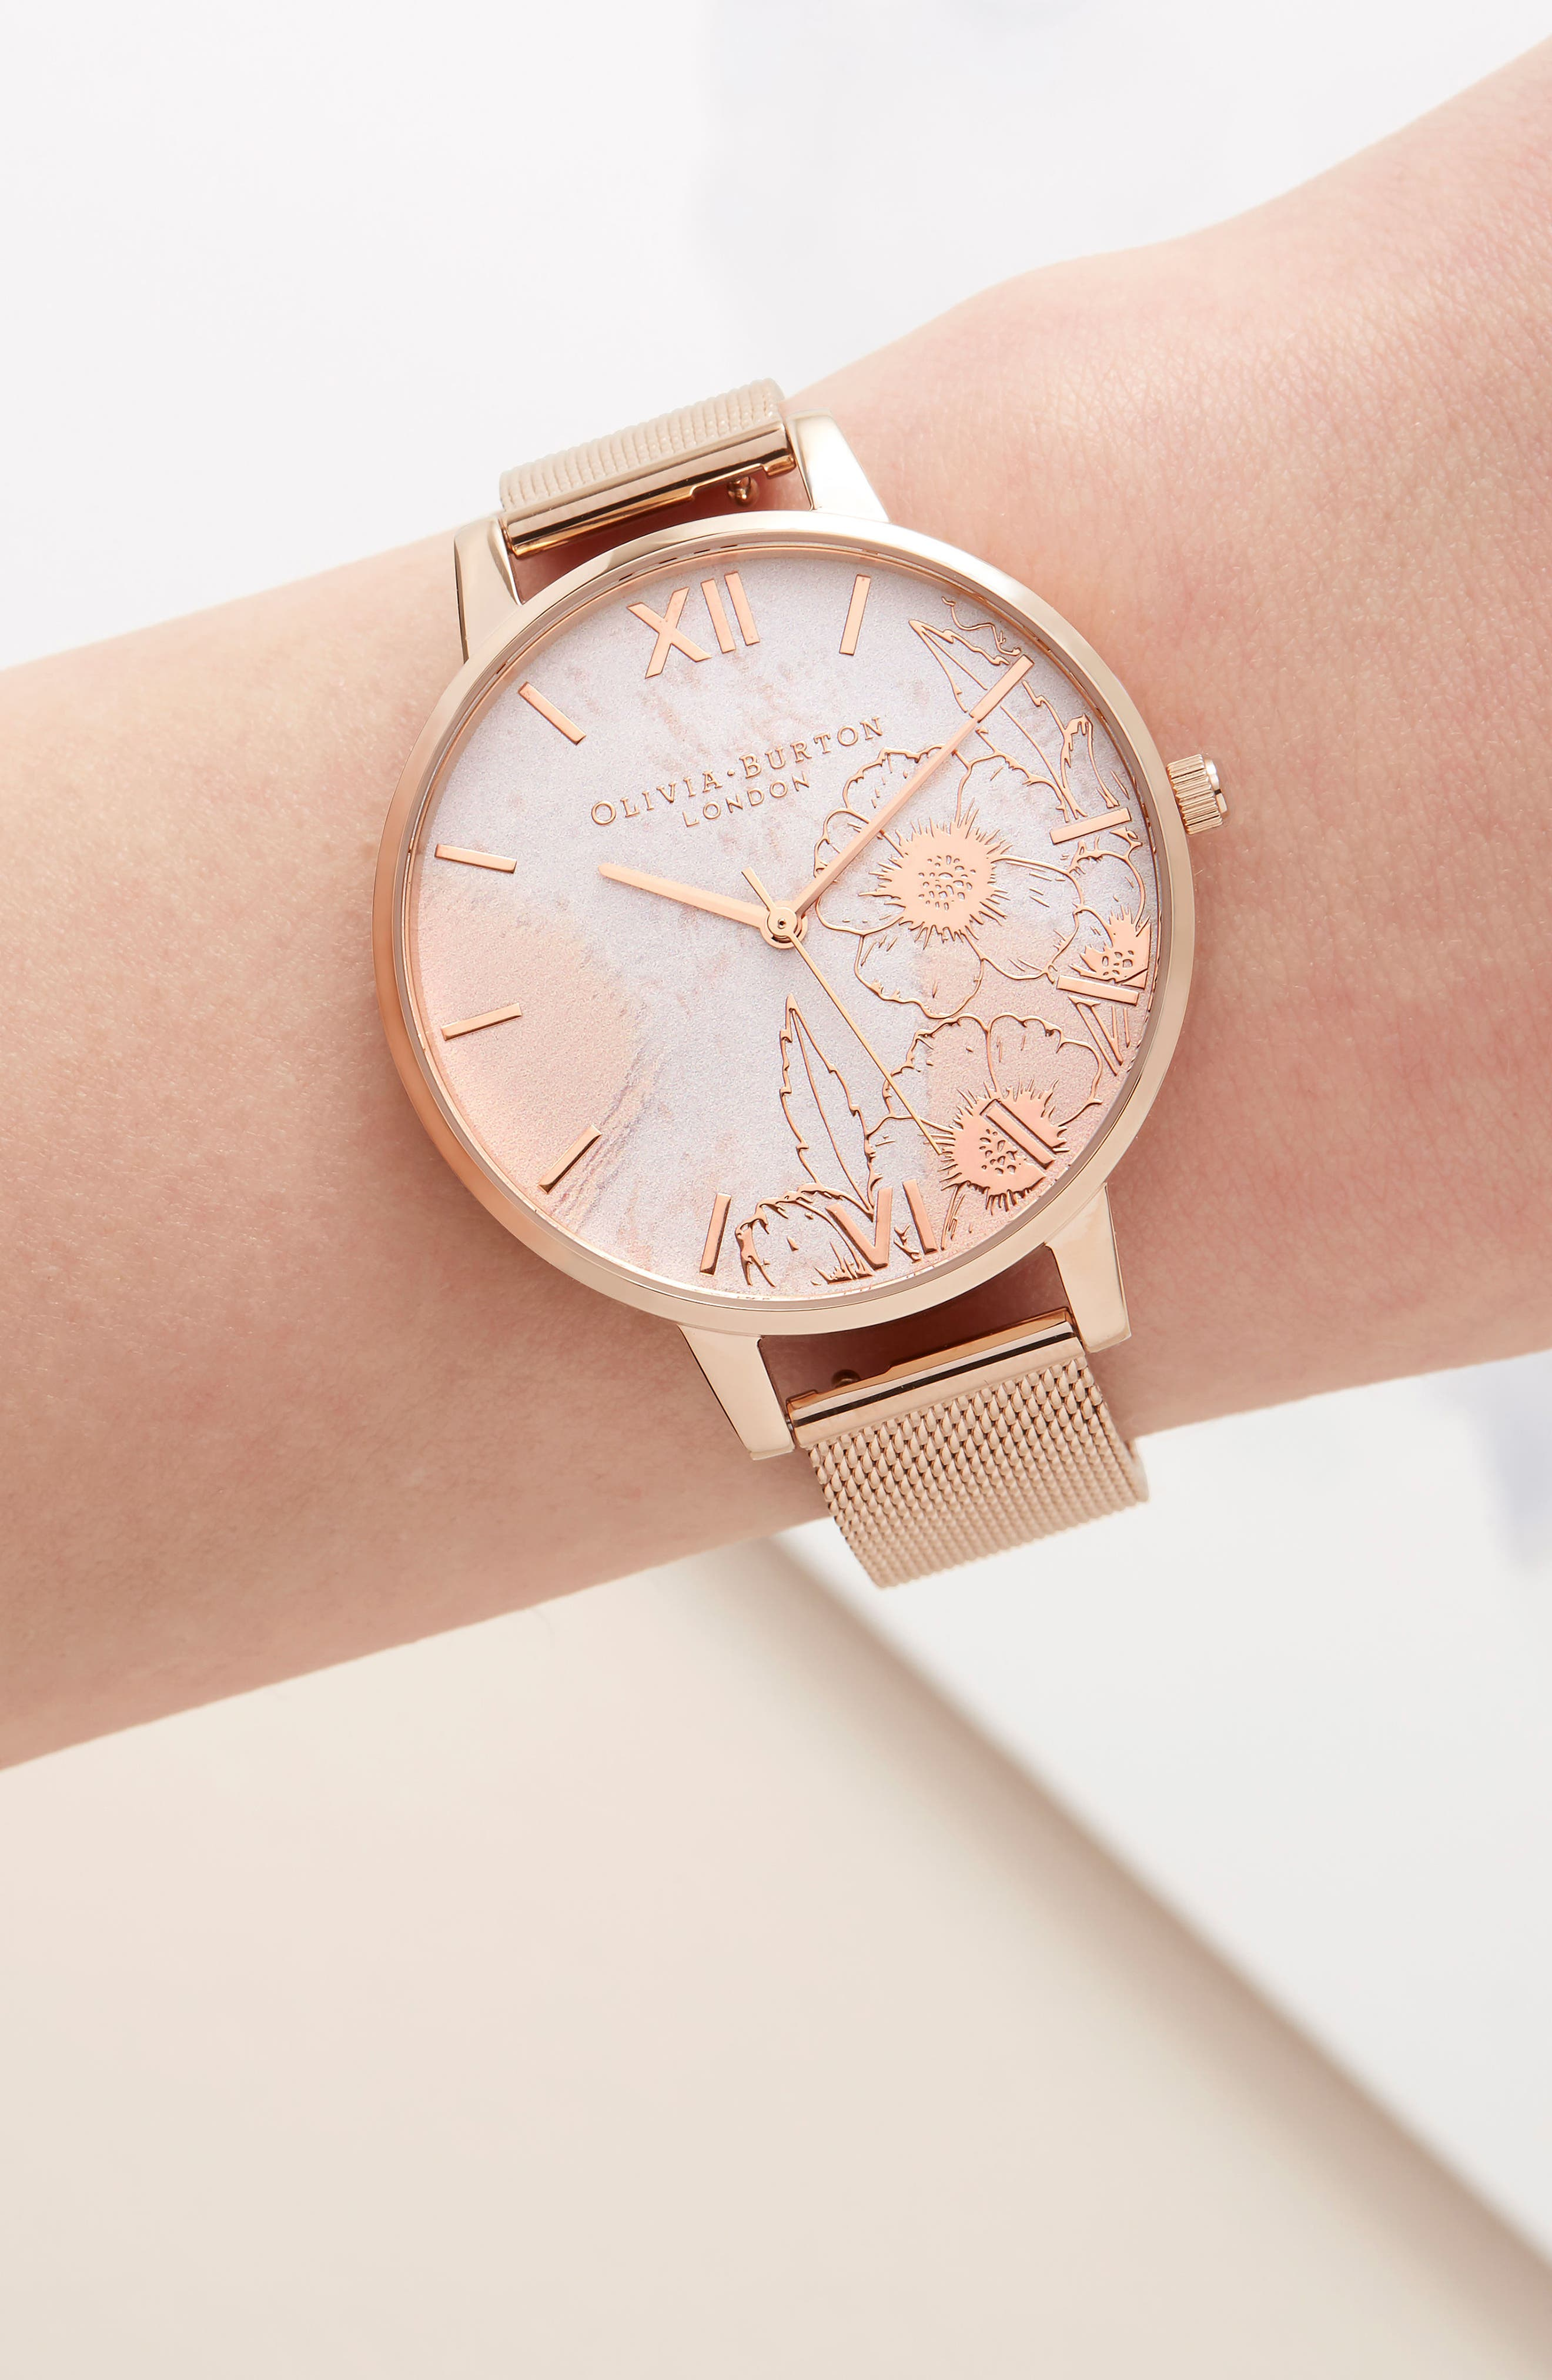 Case Cuff Mesh Strap Watch, 38mm,                             Alternate thumbnail 9, color,                             ROSE GOLD/ FLORAL/ ROSE GOLD